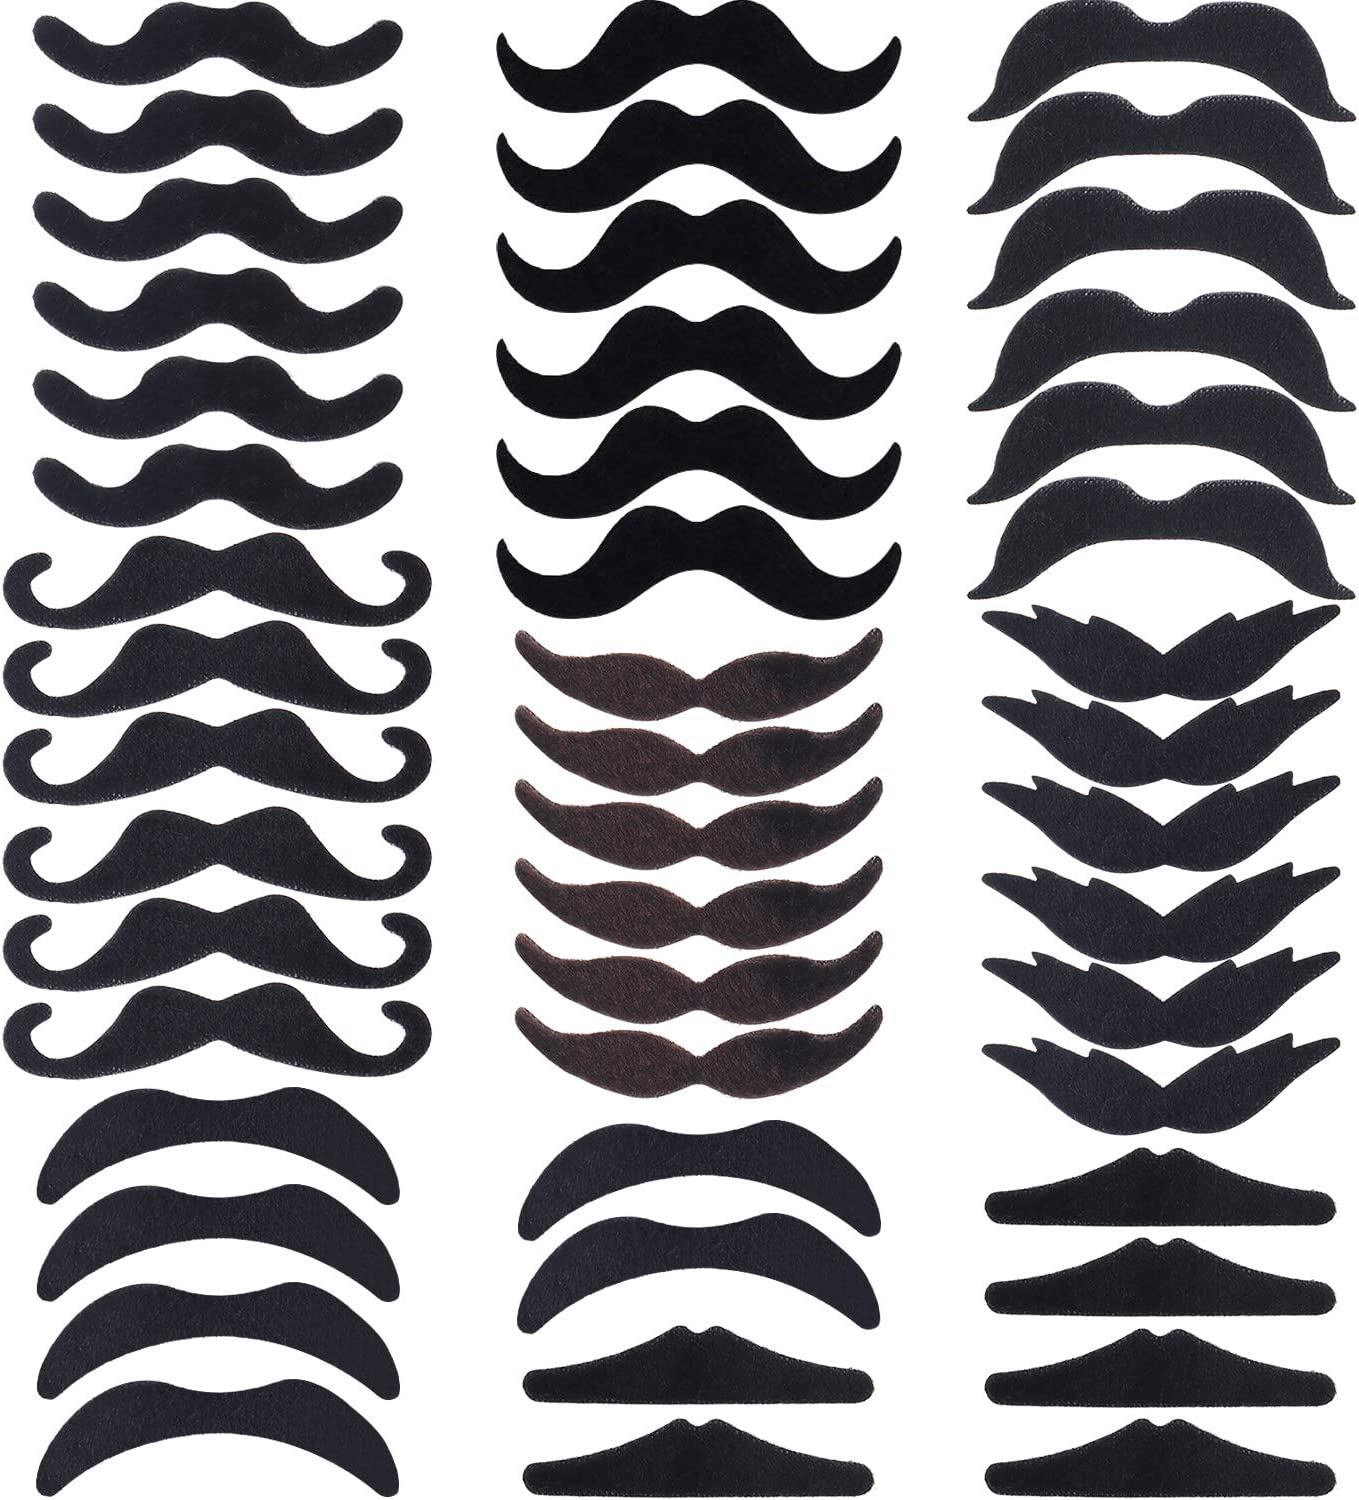 HESTYA 48 Pieces Halloween Fake Financial sales sale Novelty Adhesive Louisville-Jefferson County Mall Mustaches Self